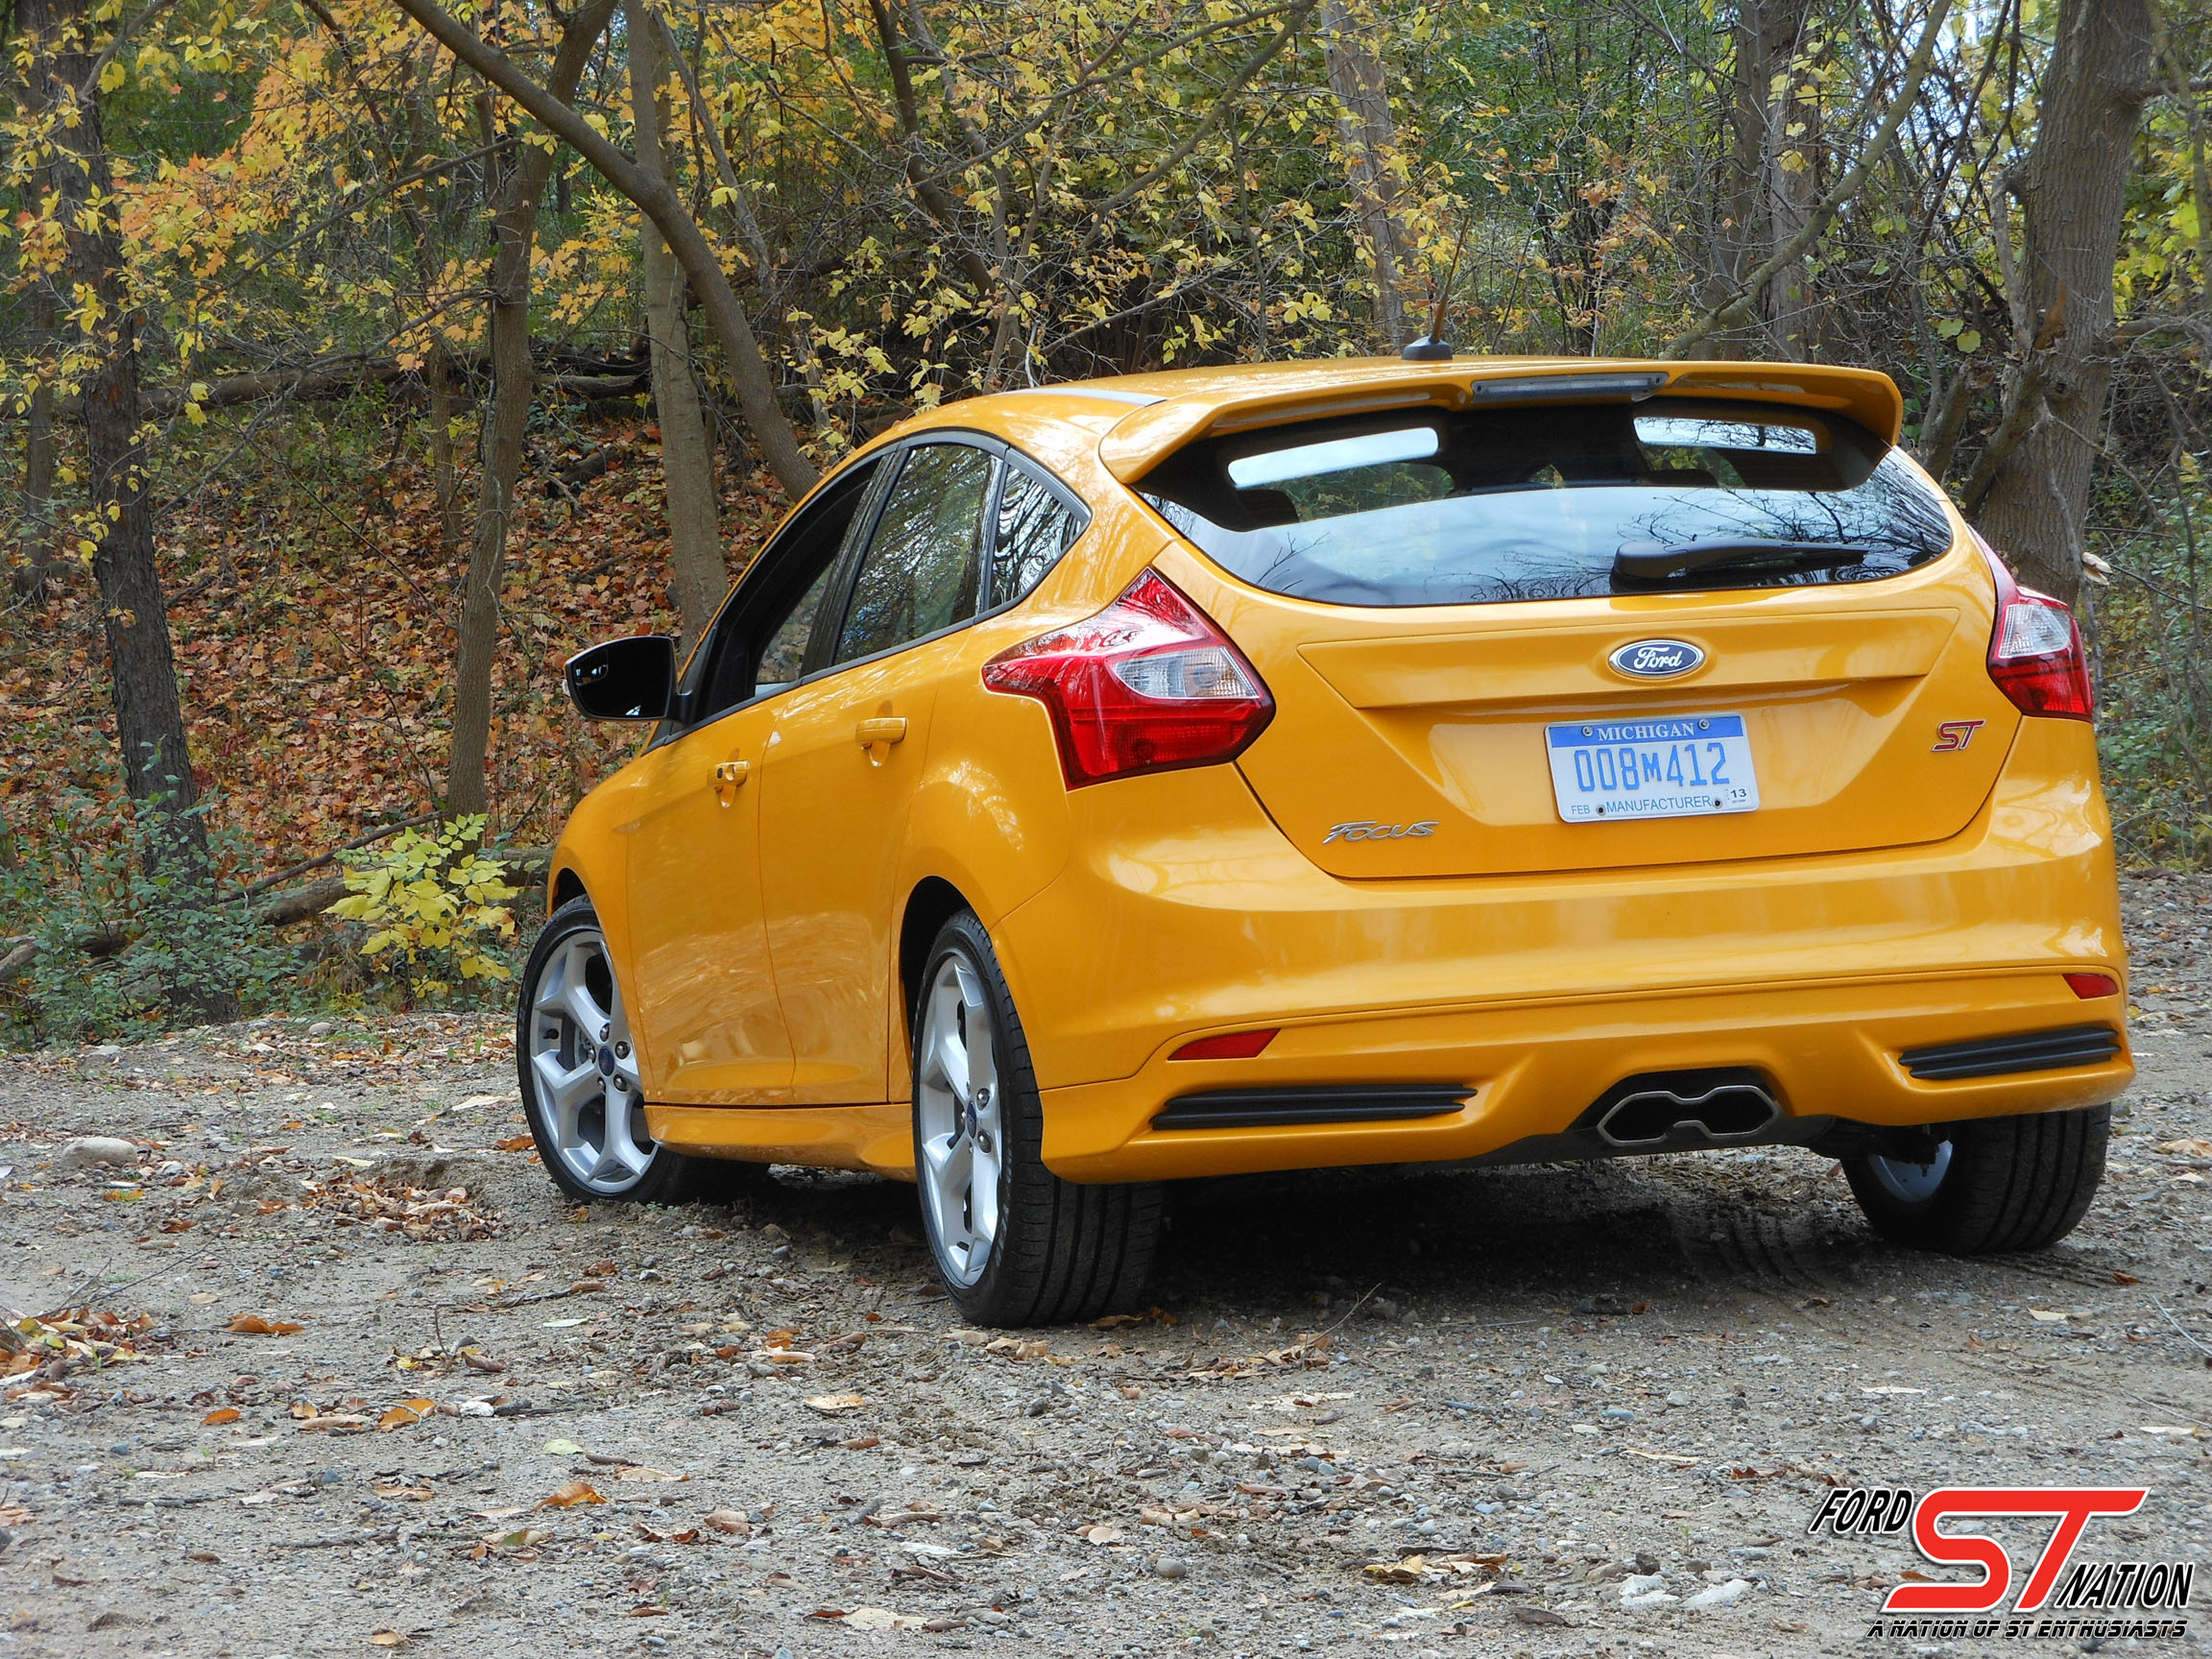 Ford focus forum ford focus st forum ford focus rs forum view single post 2013 ford focus st lower rear valence